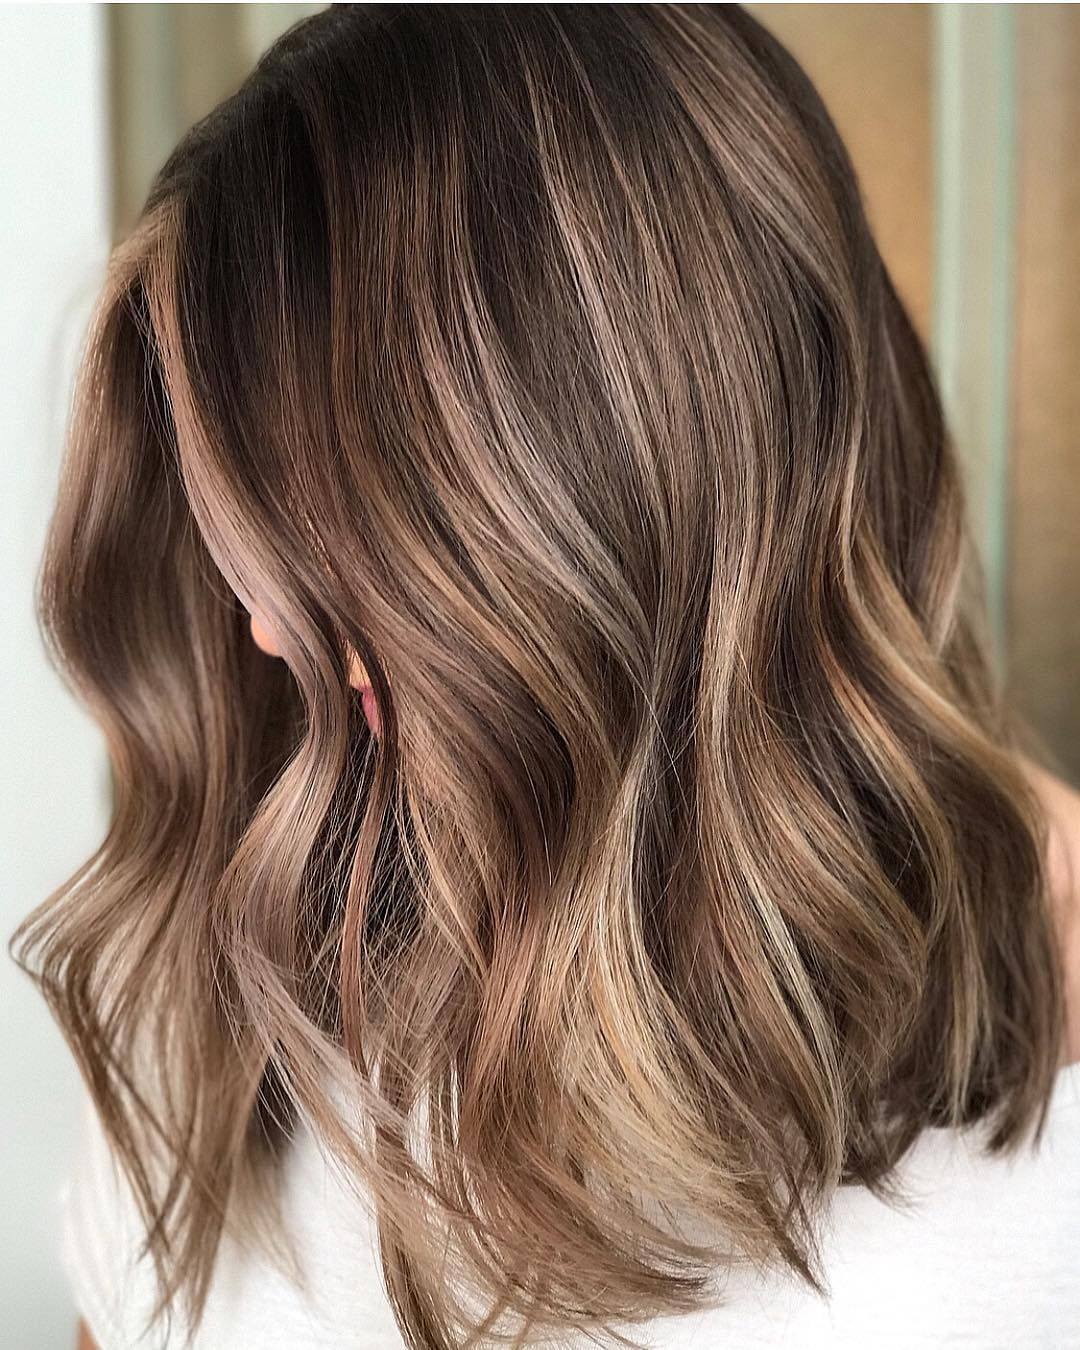 """Balayage WC, PA on Instagram: """"Chocolate peanut butter ripple 🥜🍫 Happy Monday 😊 . @behindthechair_com #btconeshot_hairpaint18 #behindthechair . . . . . #balayage…"""""""